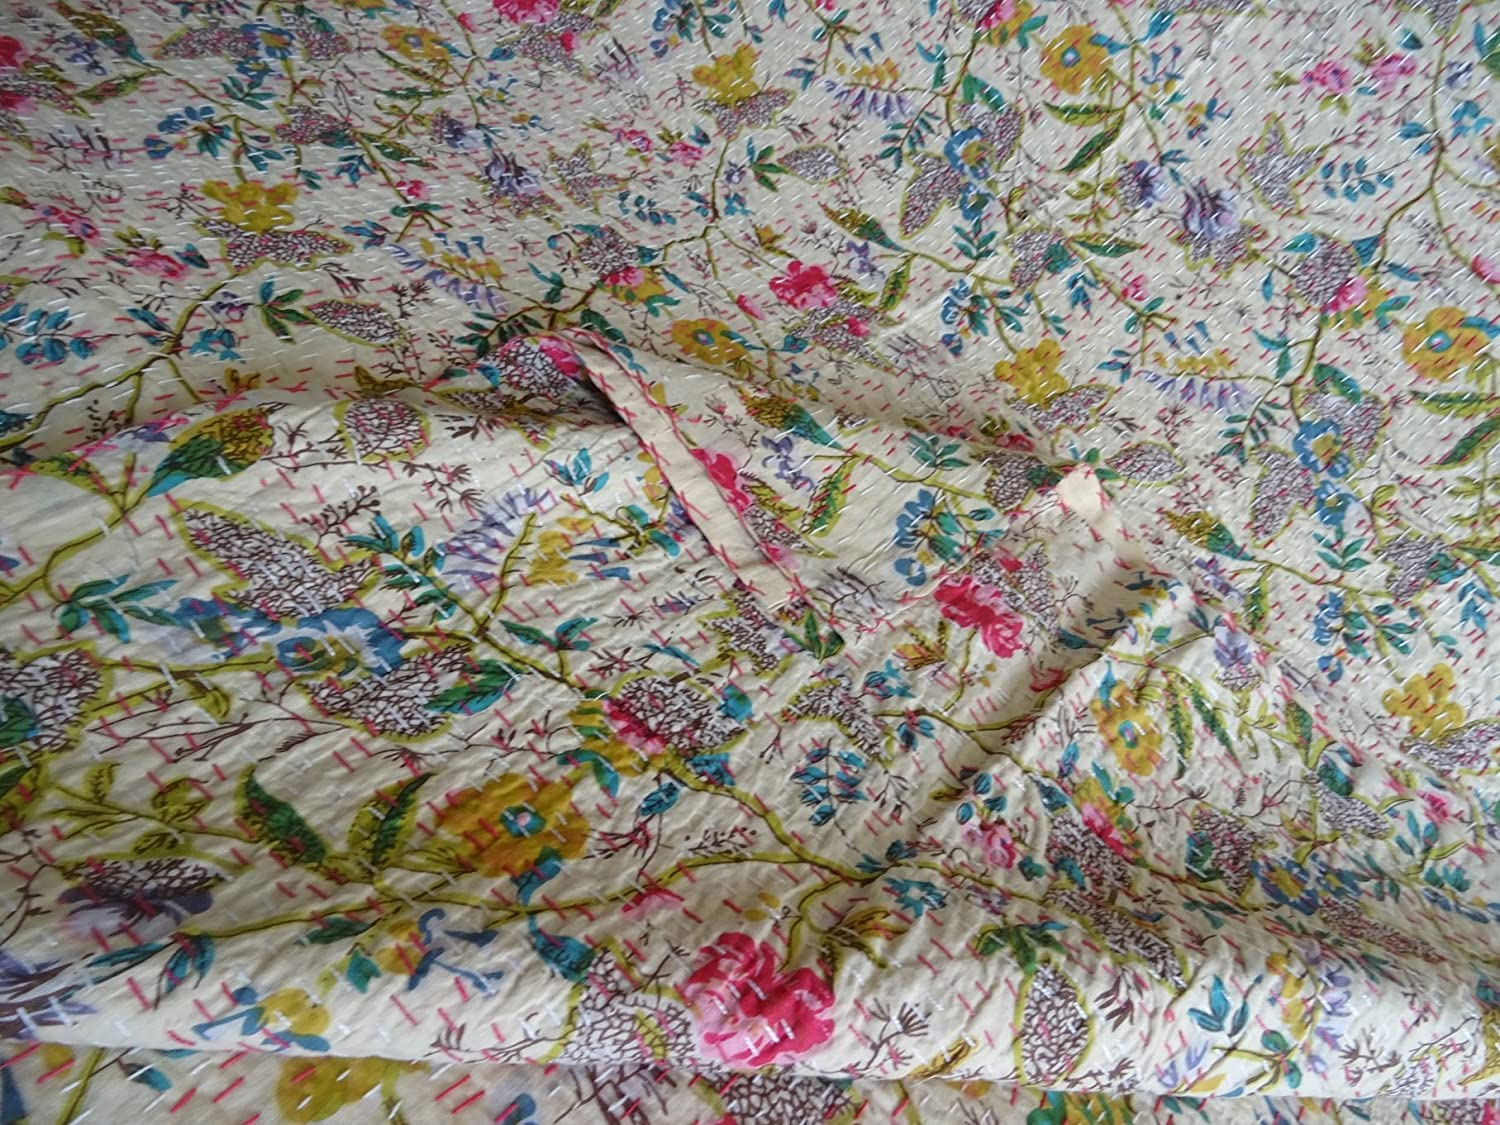 Kantha Blanket Bohemian Bedding Kantha Size 90 Inch x 108 Inch 02 Bed Cover King Kantha bedspread Tribal Asian Textiles Multicolor Paisley PARADISE Print King Size Kantha Quilt